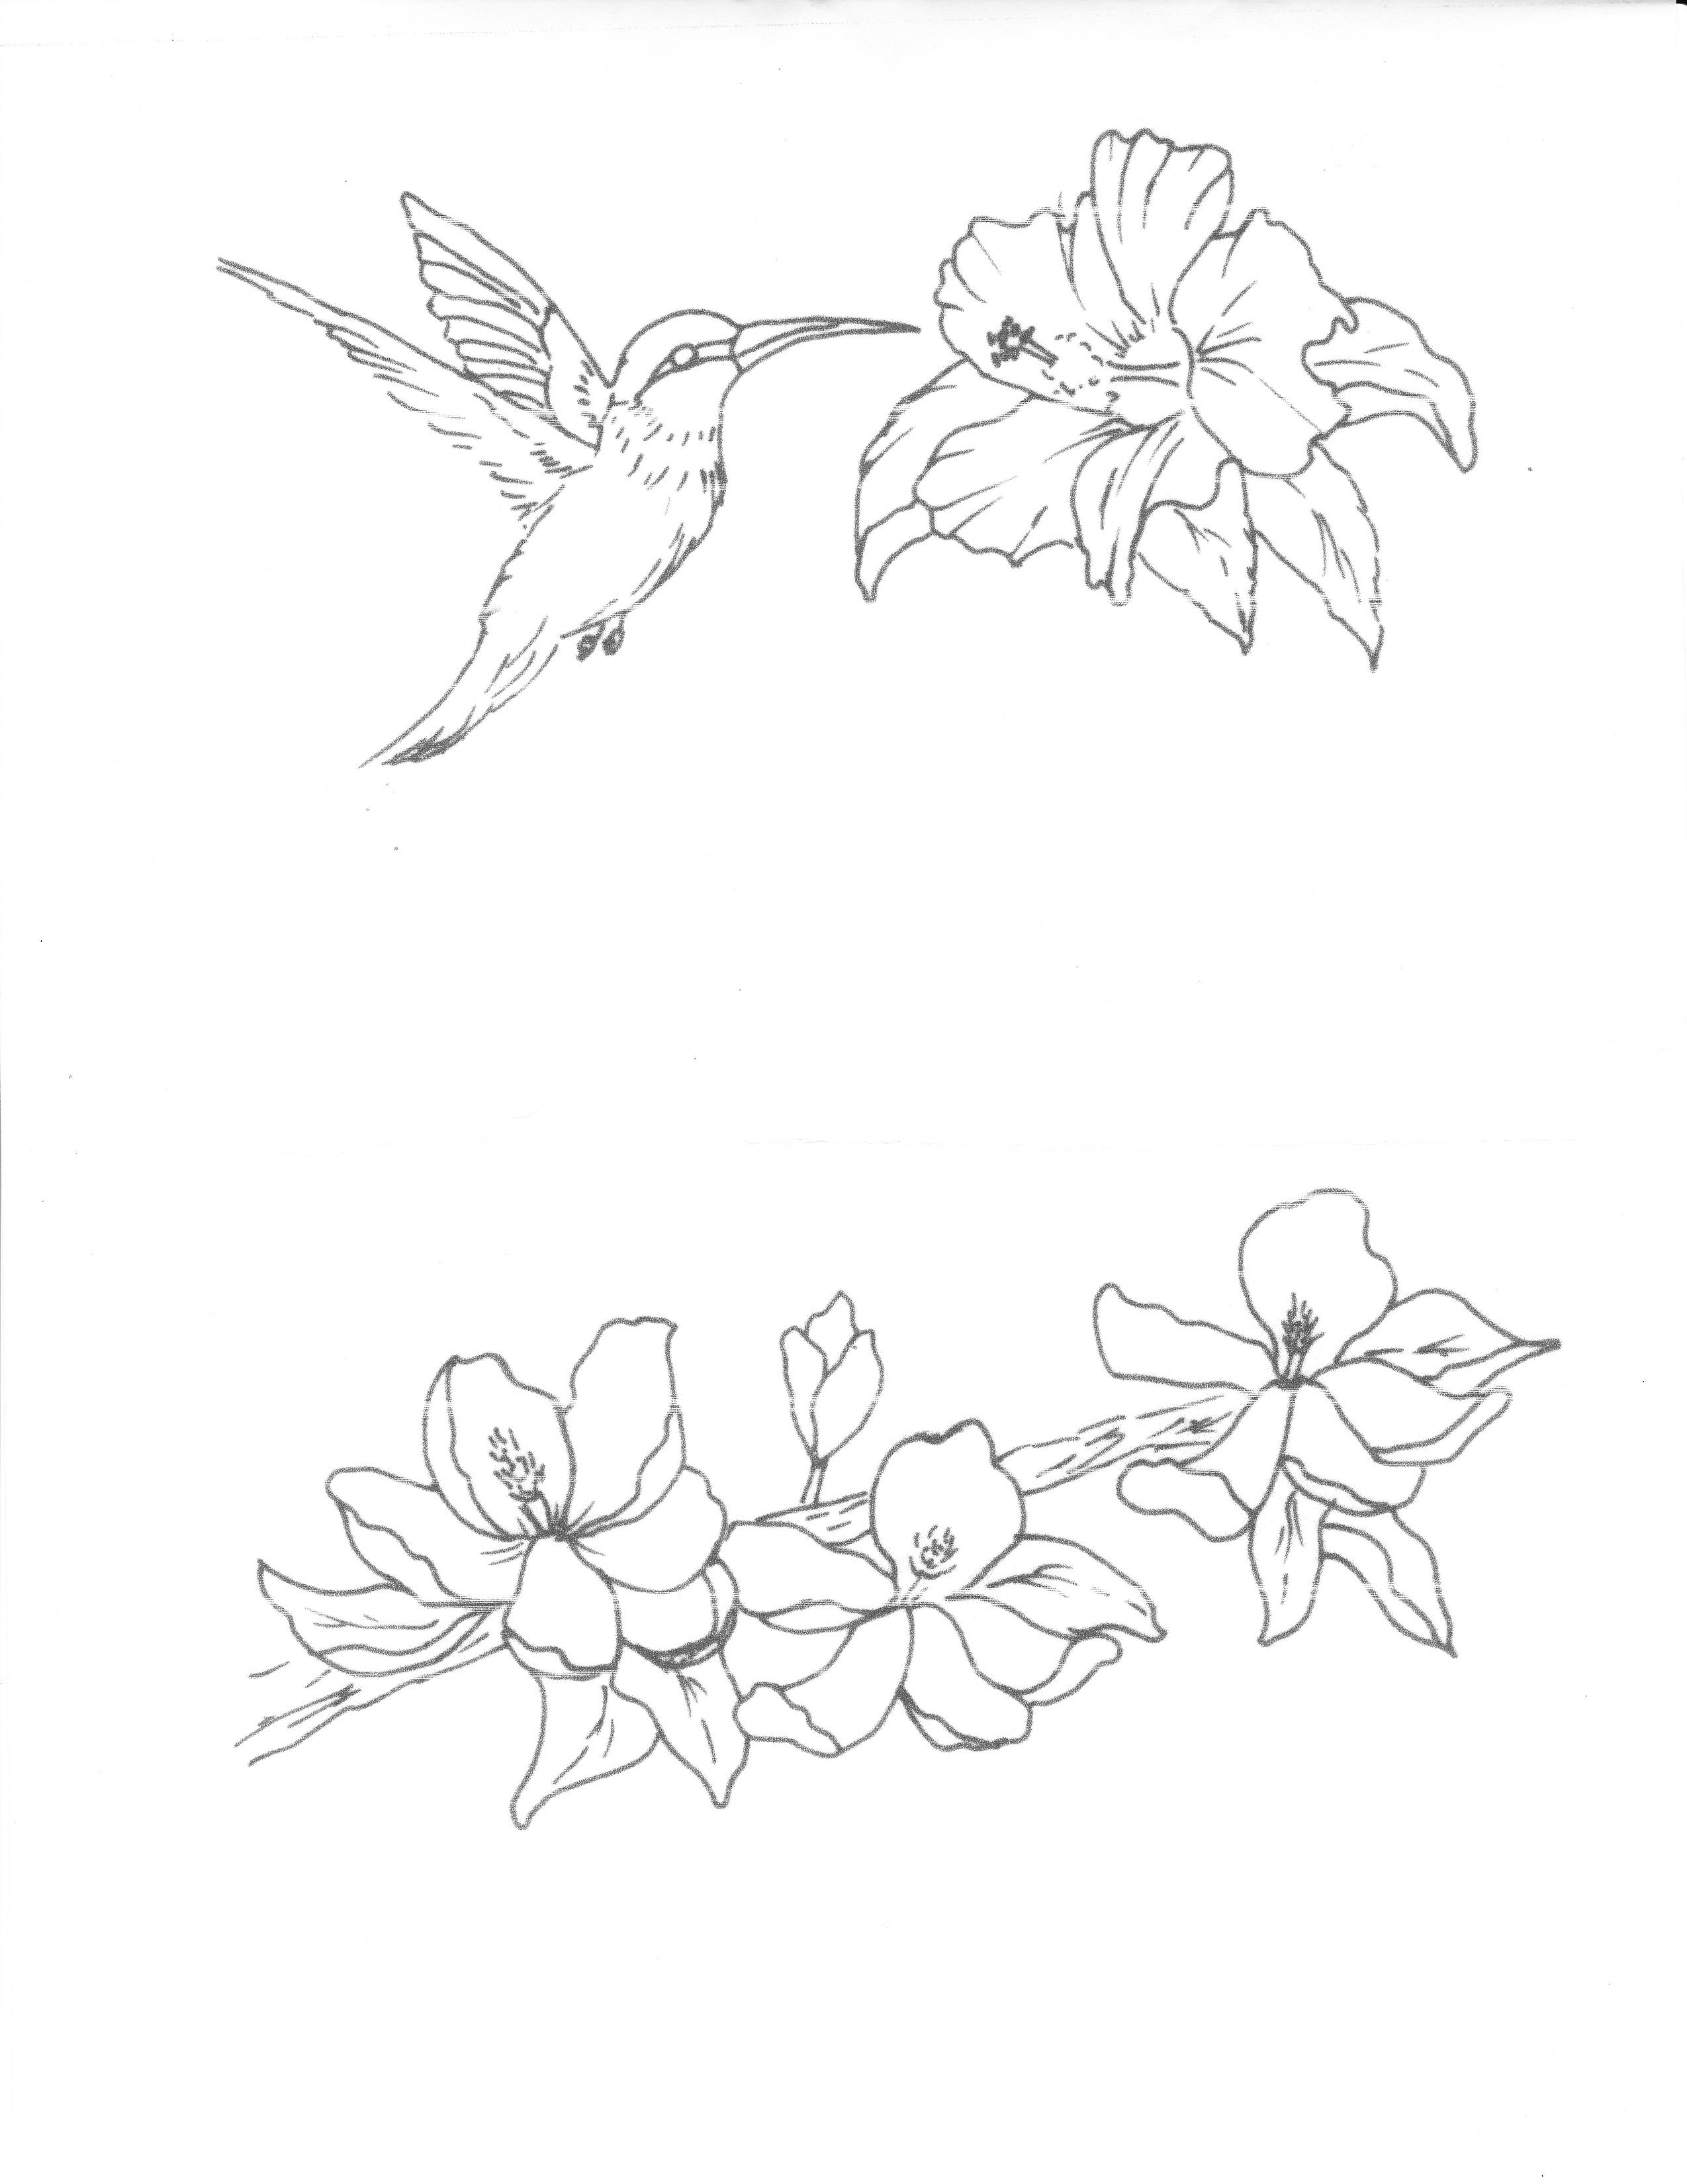 2549x3299 Drawings Of Hummingbirds And Flowers Hummingbird And Flower